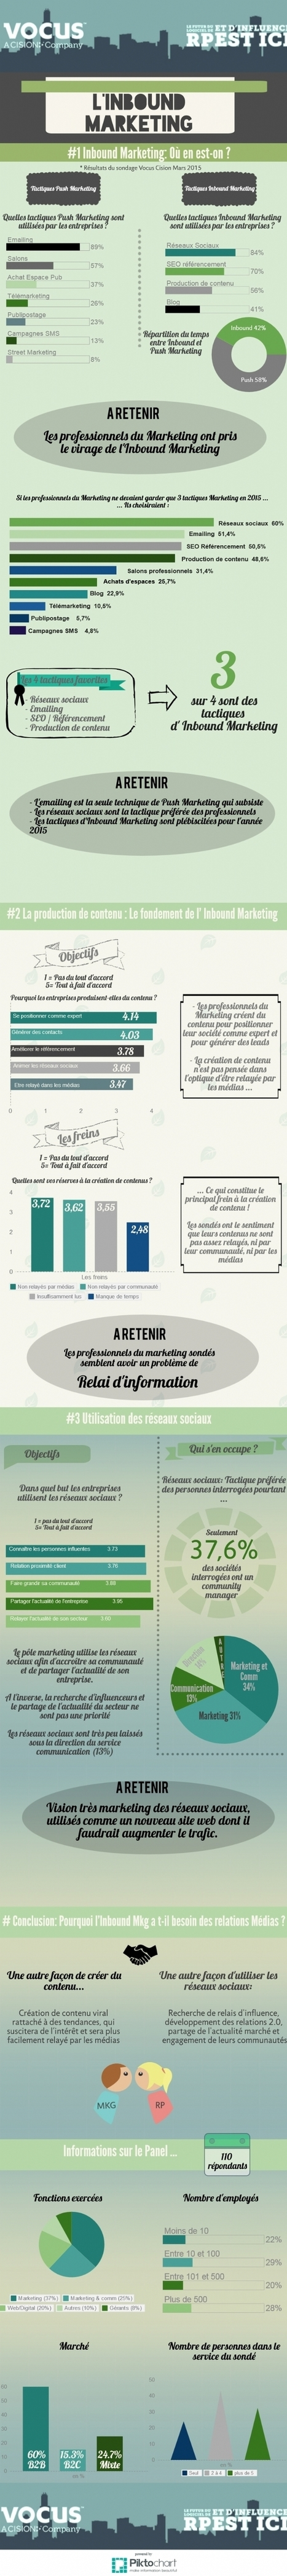 Infographie | emailing, réseaux sociaux, SEO, 3 techniques d'Inbound marketing | Digital Martketing 101 | Scoop.it